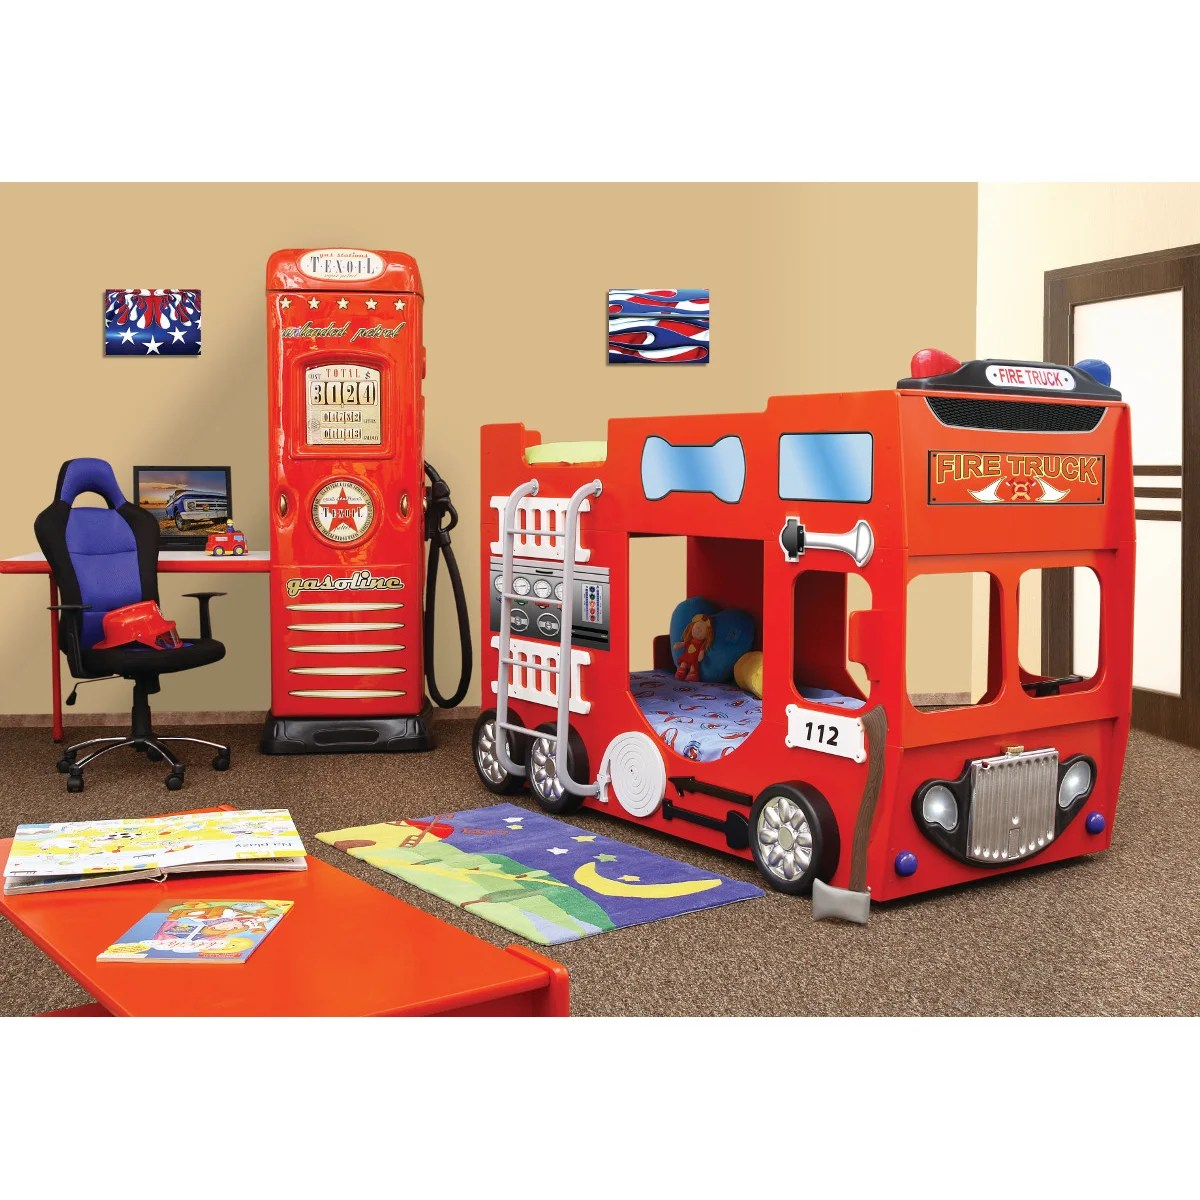 Toddler Bunks Plastiko Fire Truck Toddler Bunk Bed Wayfair Ca